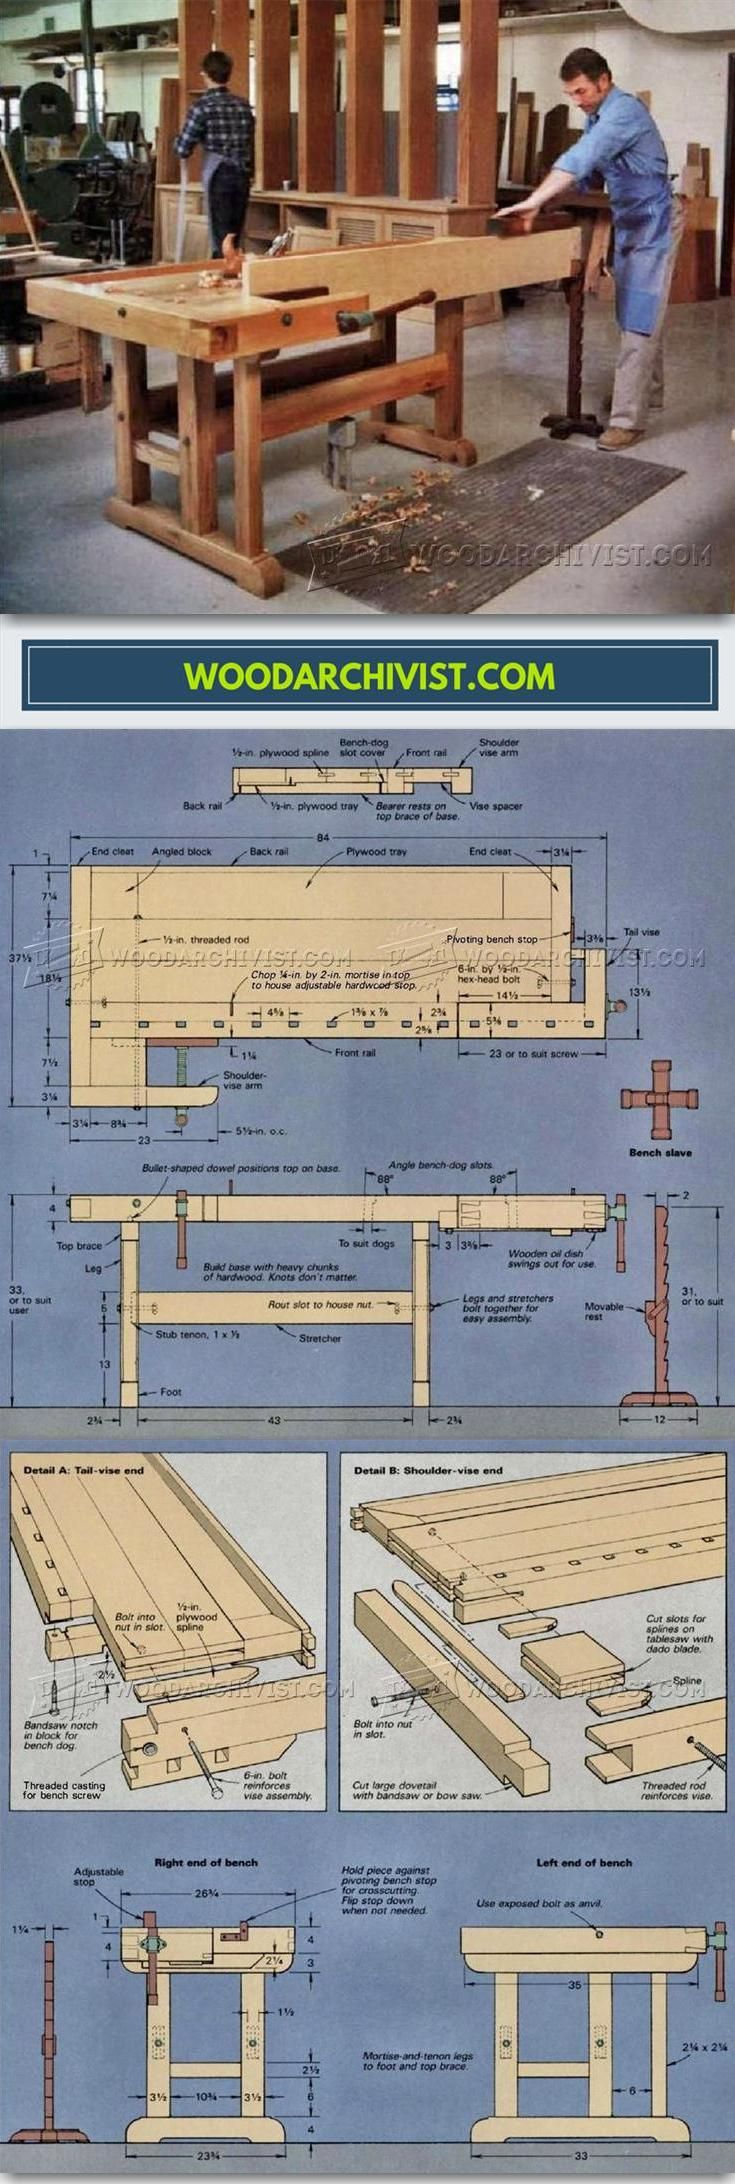 Classic Workbench Plans - Workshop Solutions Projects, Tips and Tricks   WoodArchivist.com